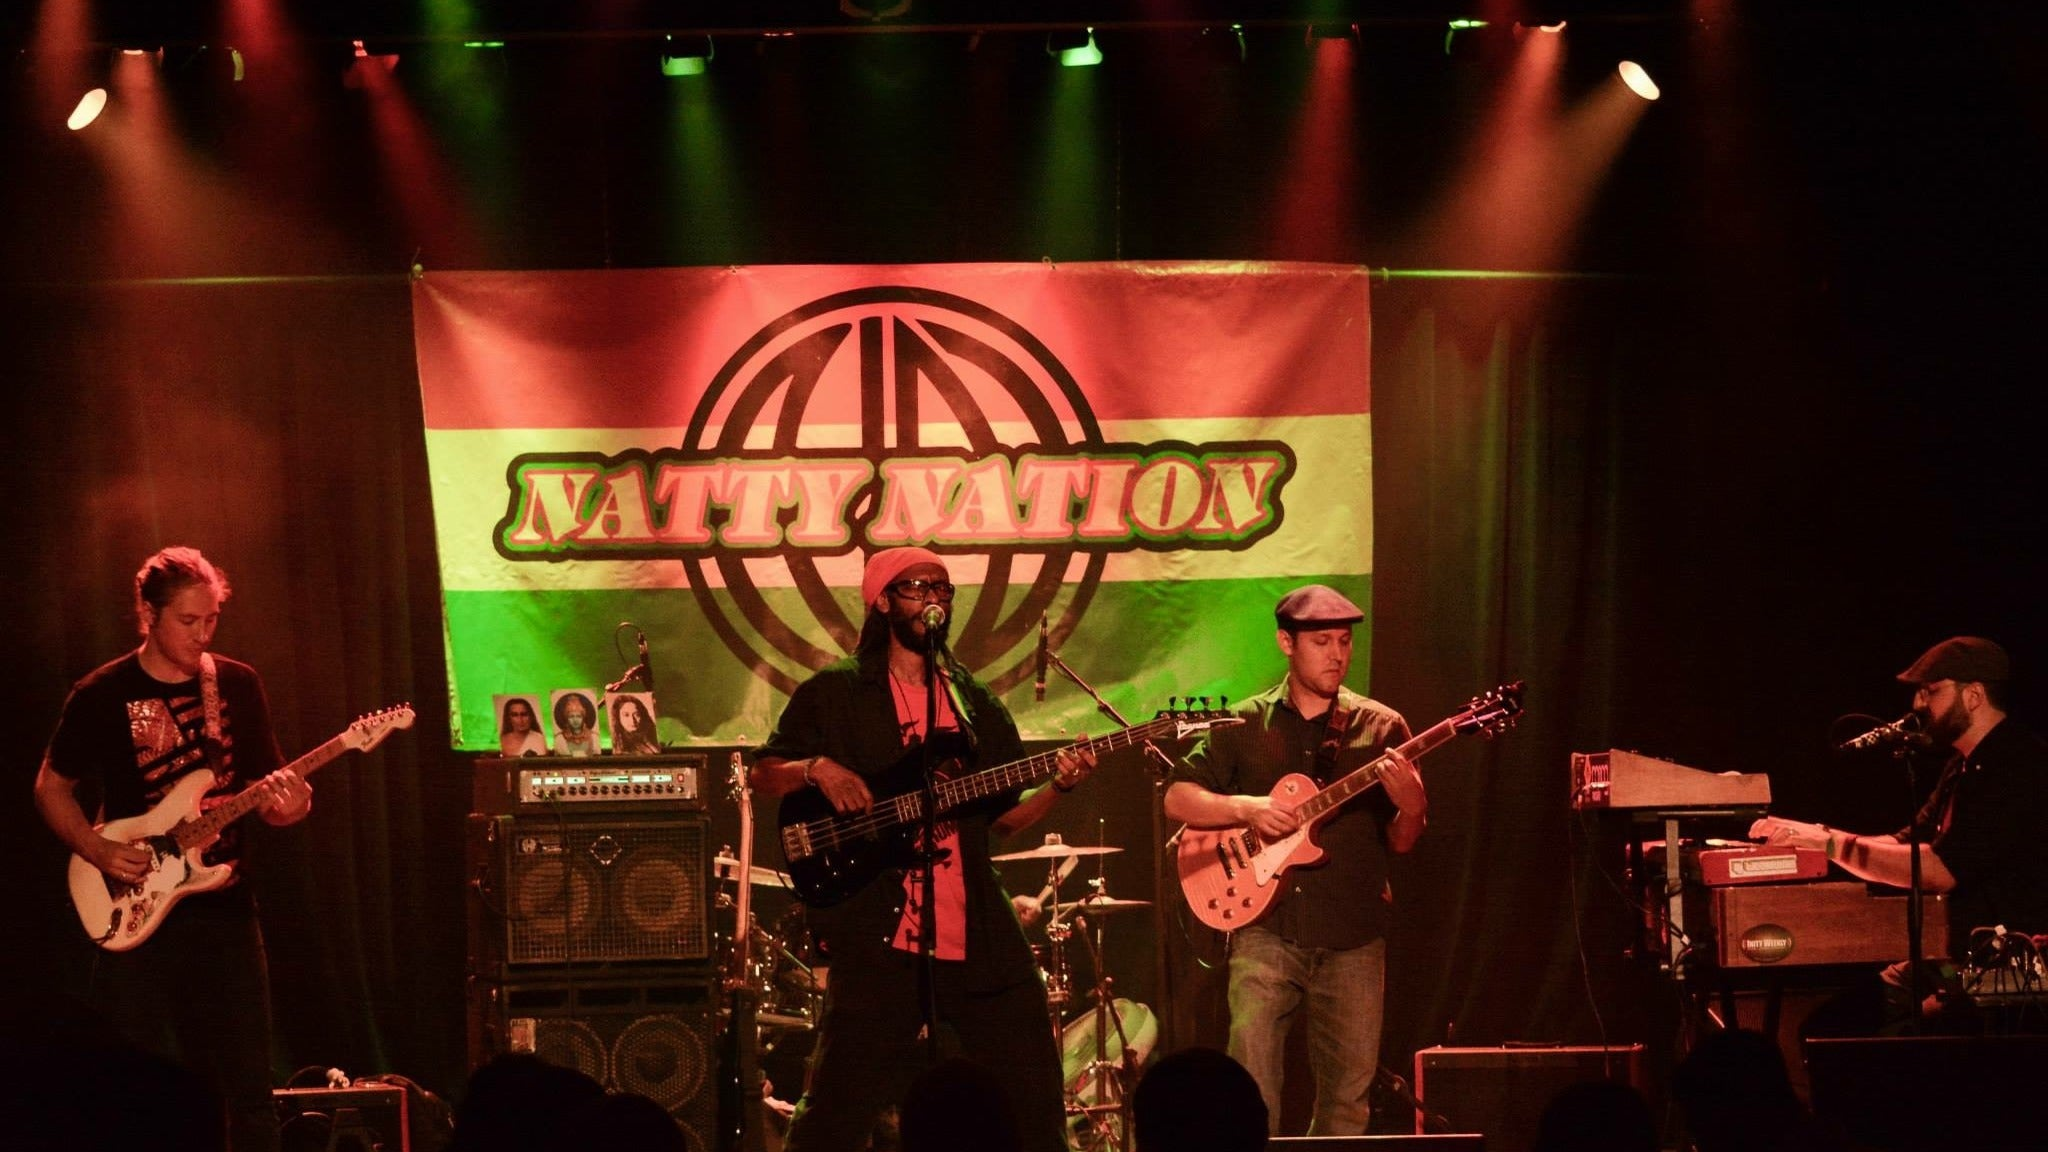 The 4/20 Green Getdown with Natty Nation & People Brothers Band